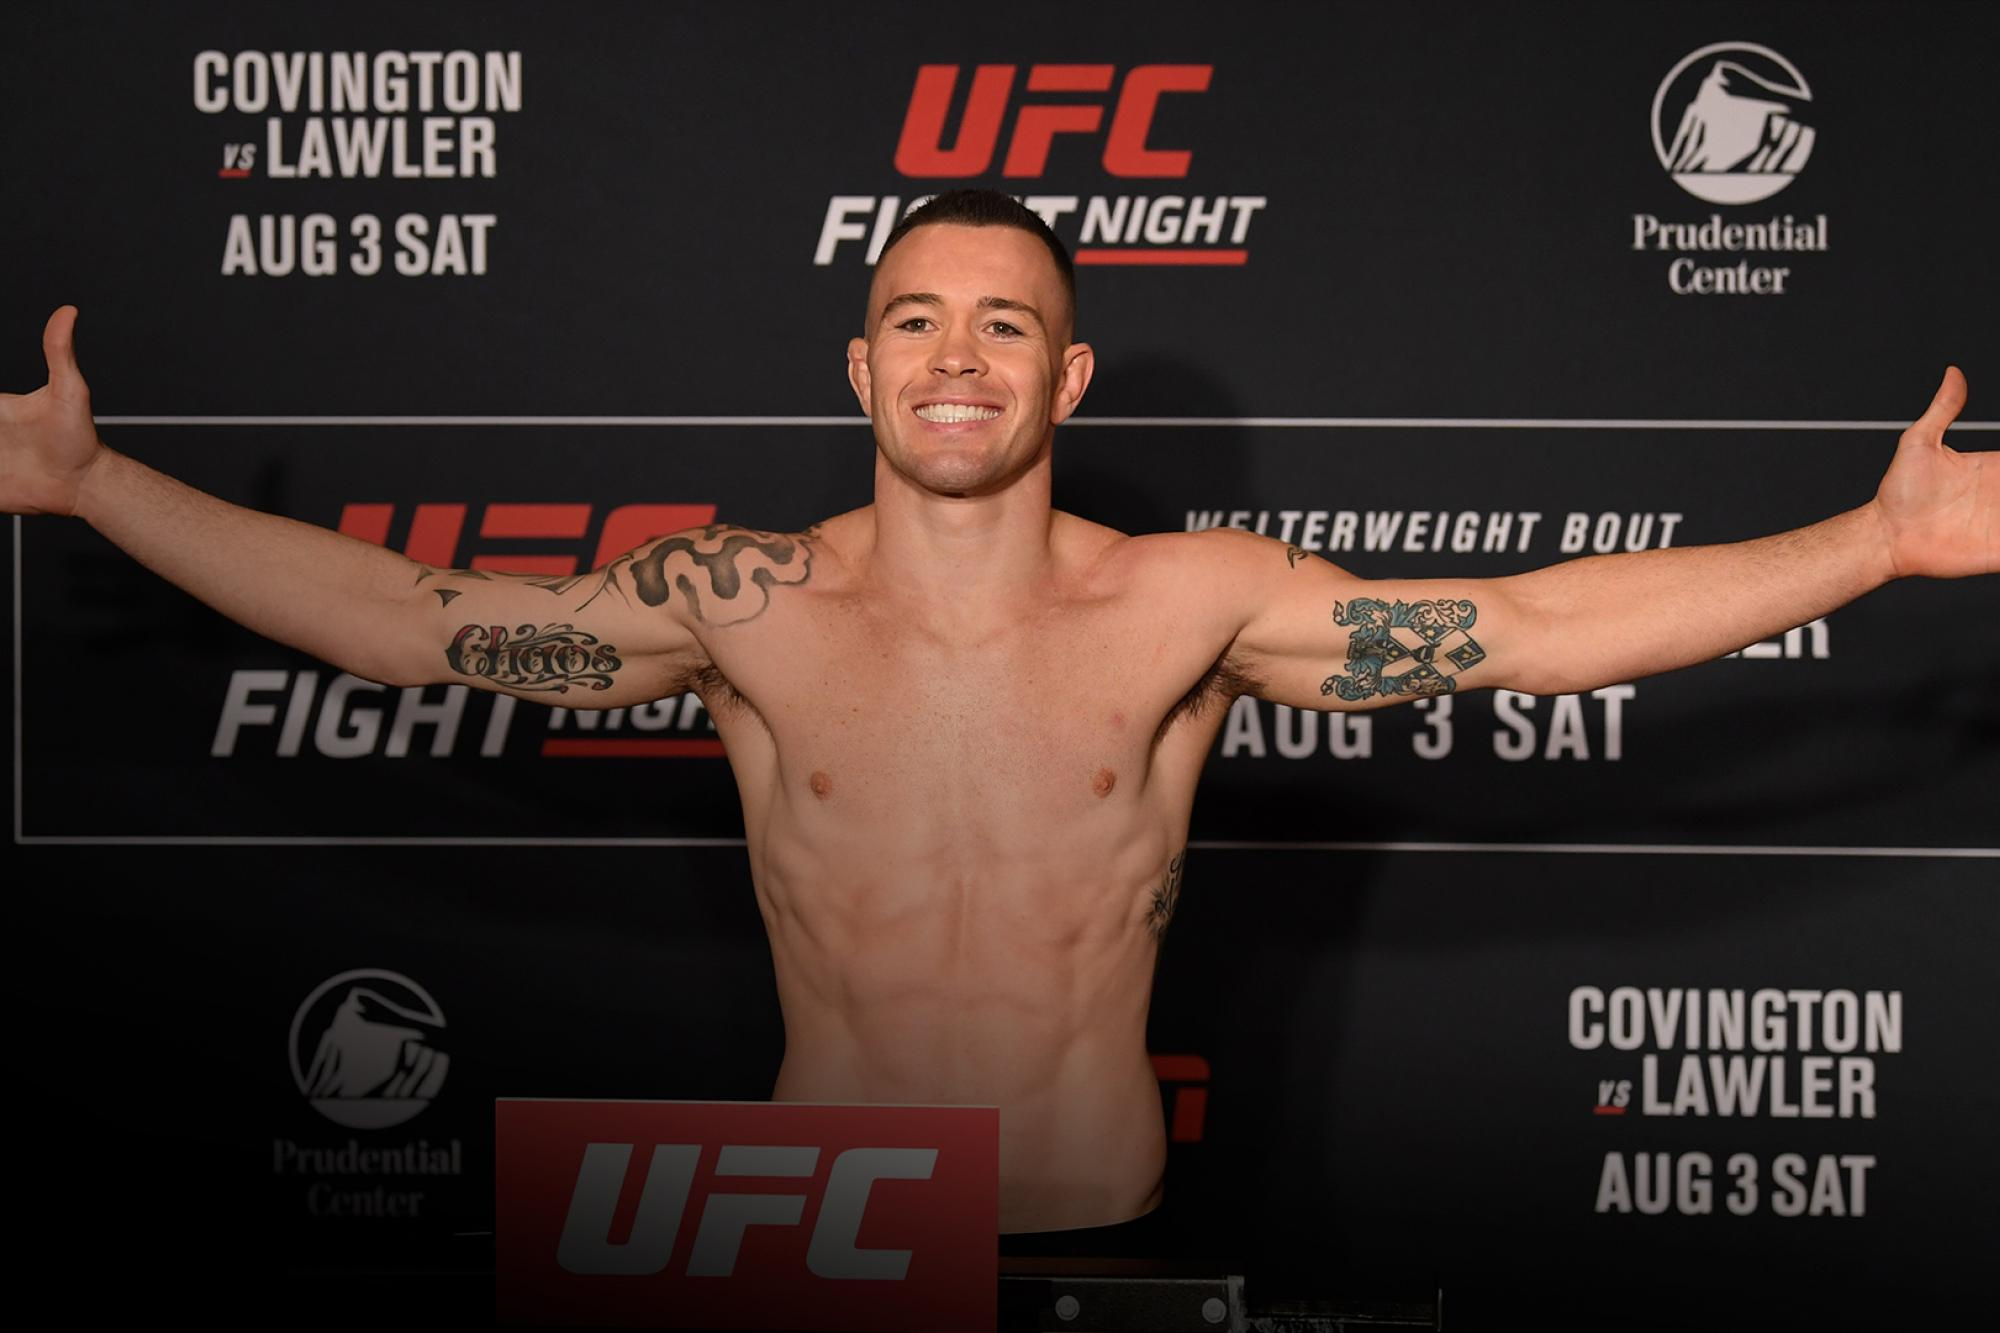 Dillon Danis unimpressed with Colby Covington's win over Robbie Lawler - Dillon Danis